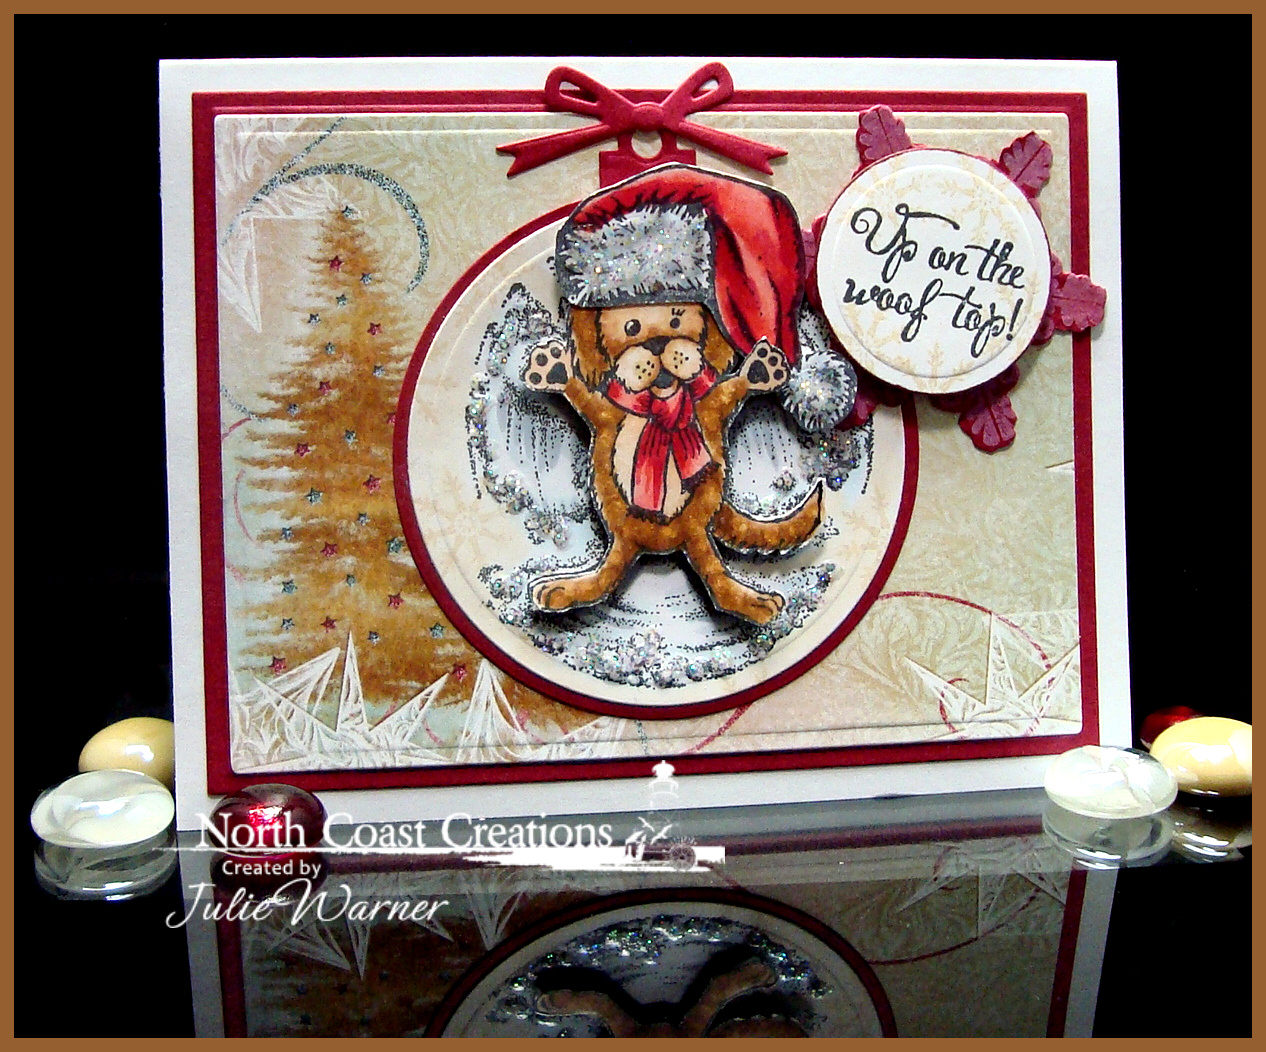 Stamps - North Coast Creations Snow Angel Murphy, Santa Paws, Santa Claws, ODBD Christmas Paper Collection 2014, ODBD Snowflakes, ODBD Sparkling Snowflakes Dies, ODBD Custom Circle Ornament Dies, ODBD Custom Matting Circles Dies